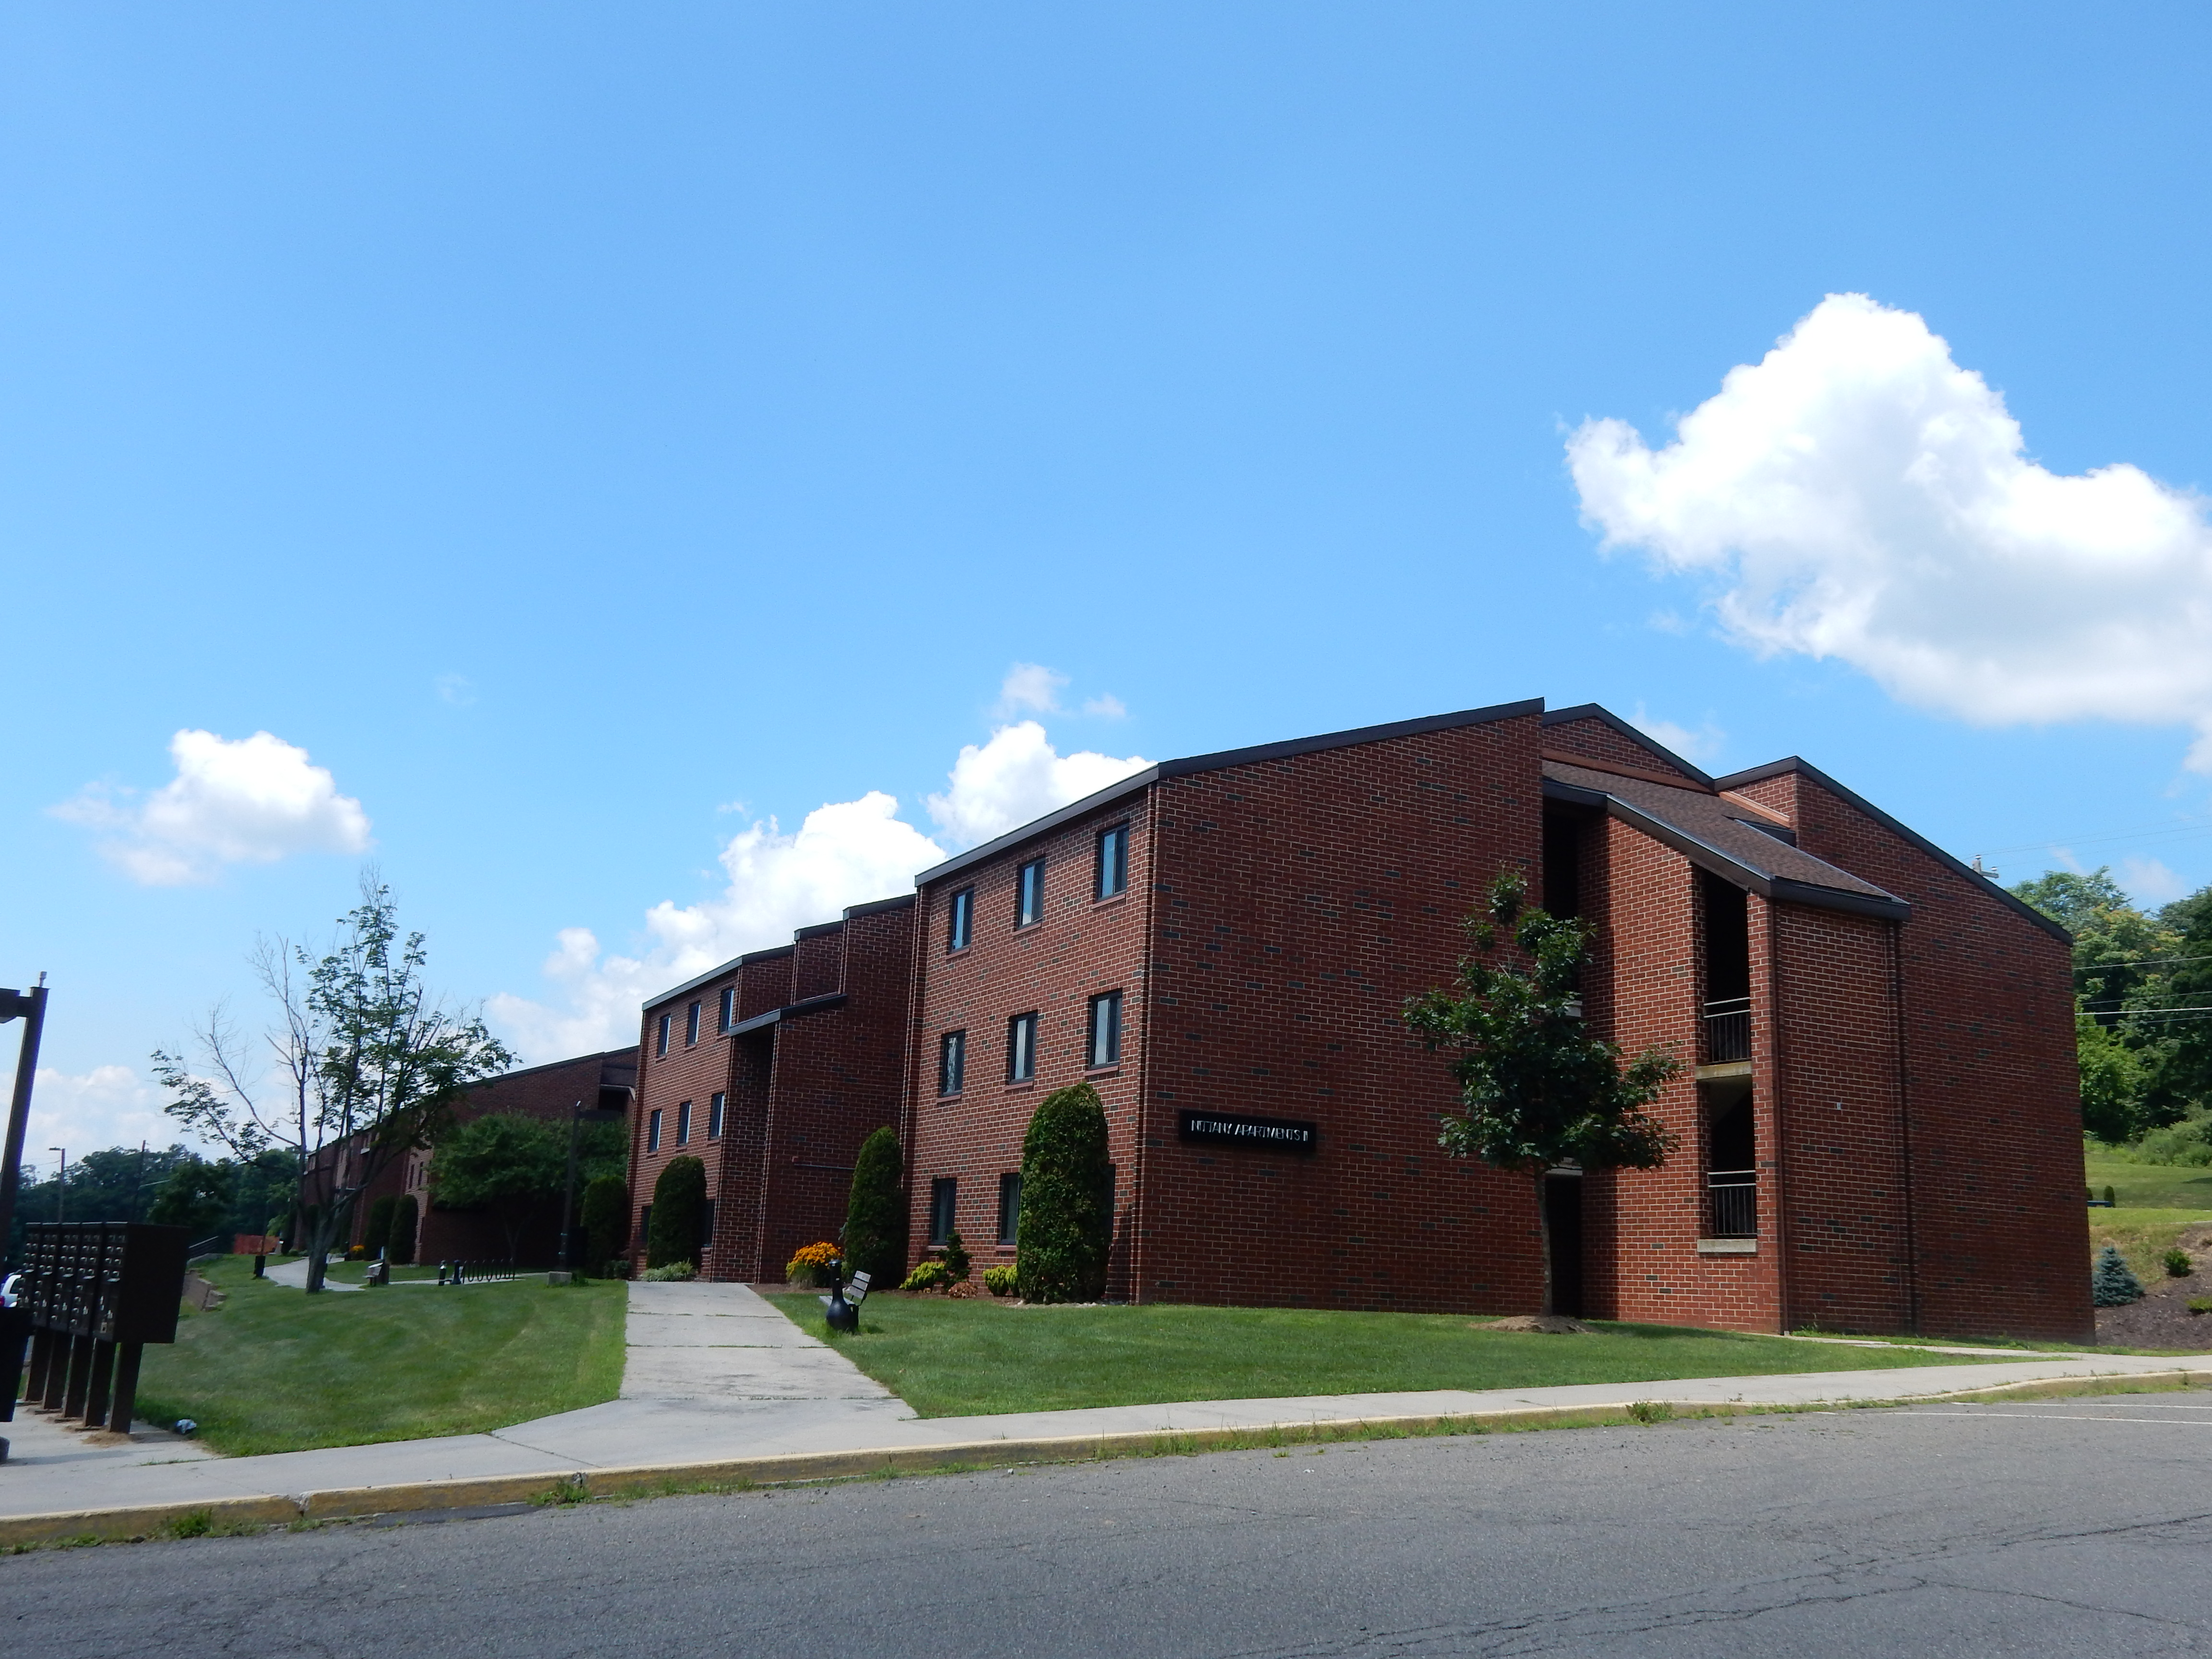 File:Nittany Apartments II At Penn State Schuylkill